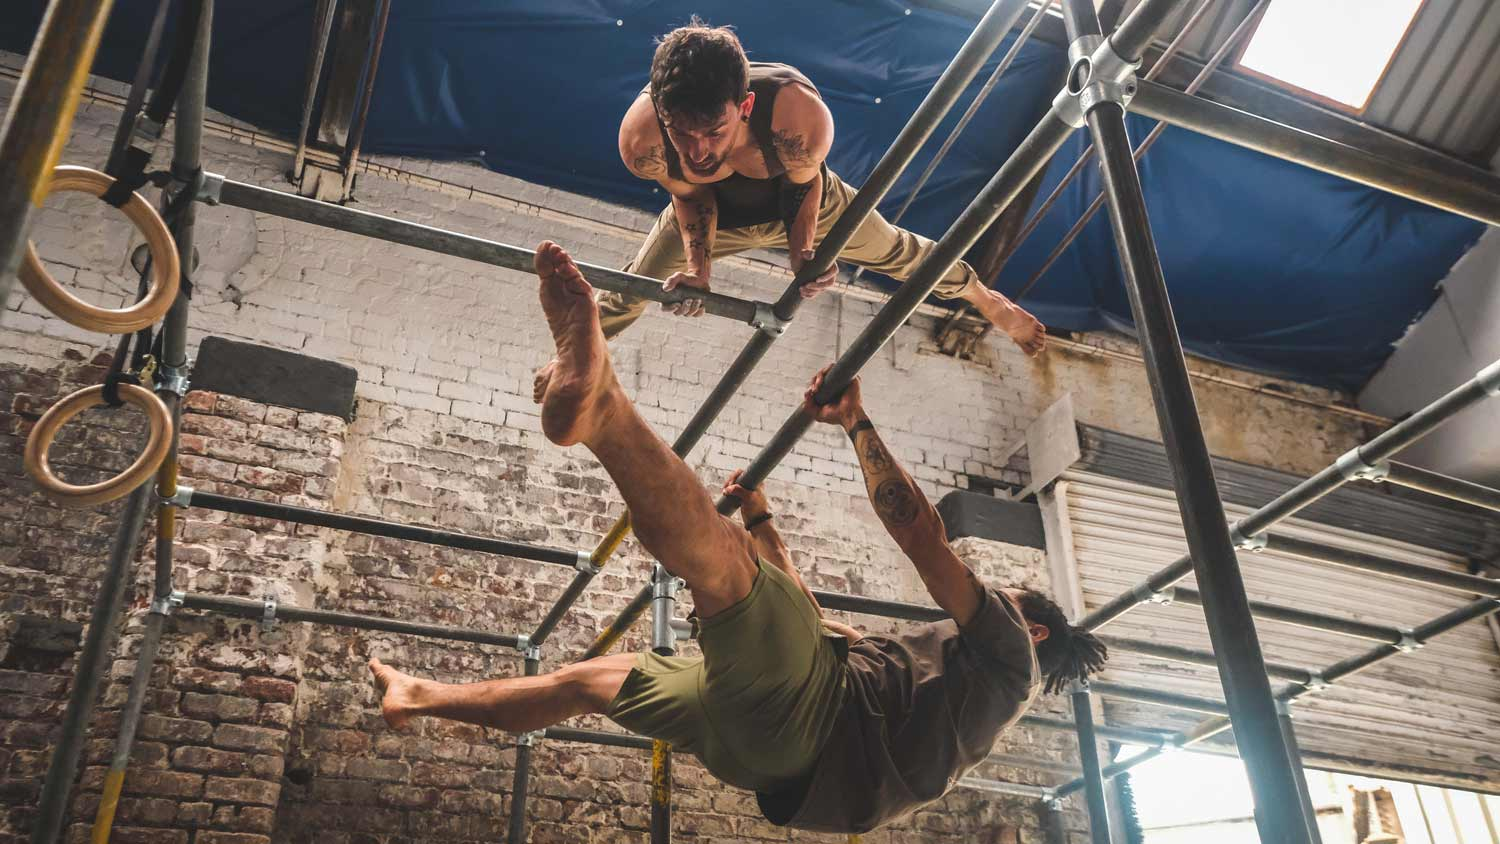 Two men doing calisthenics on scaffolding